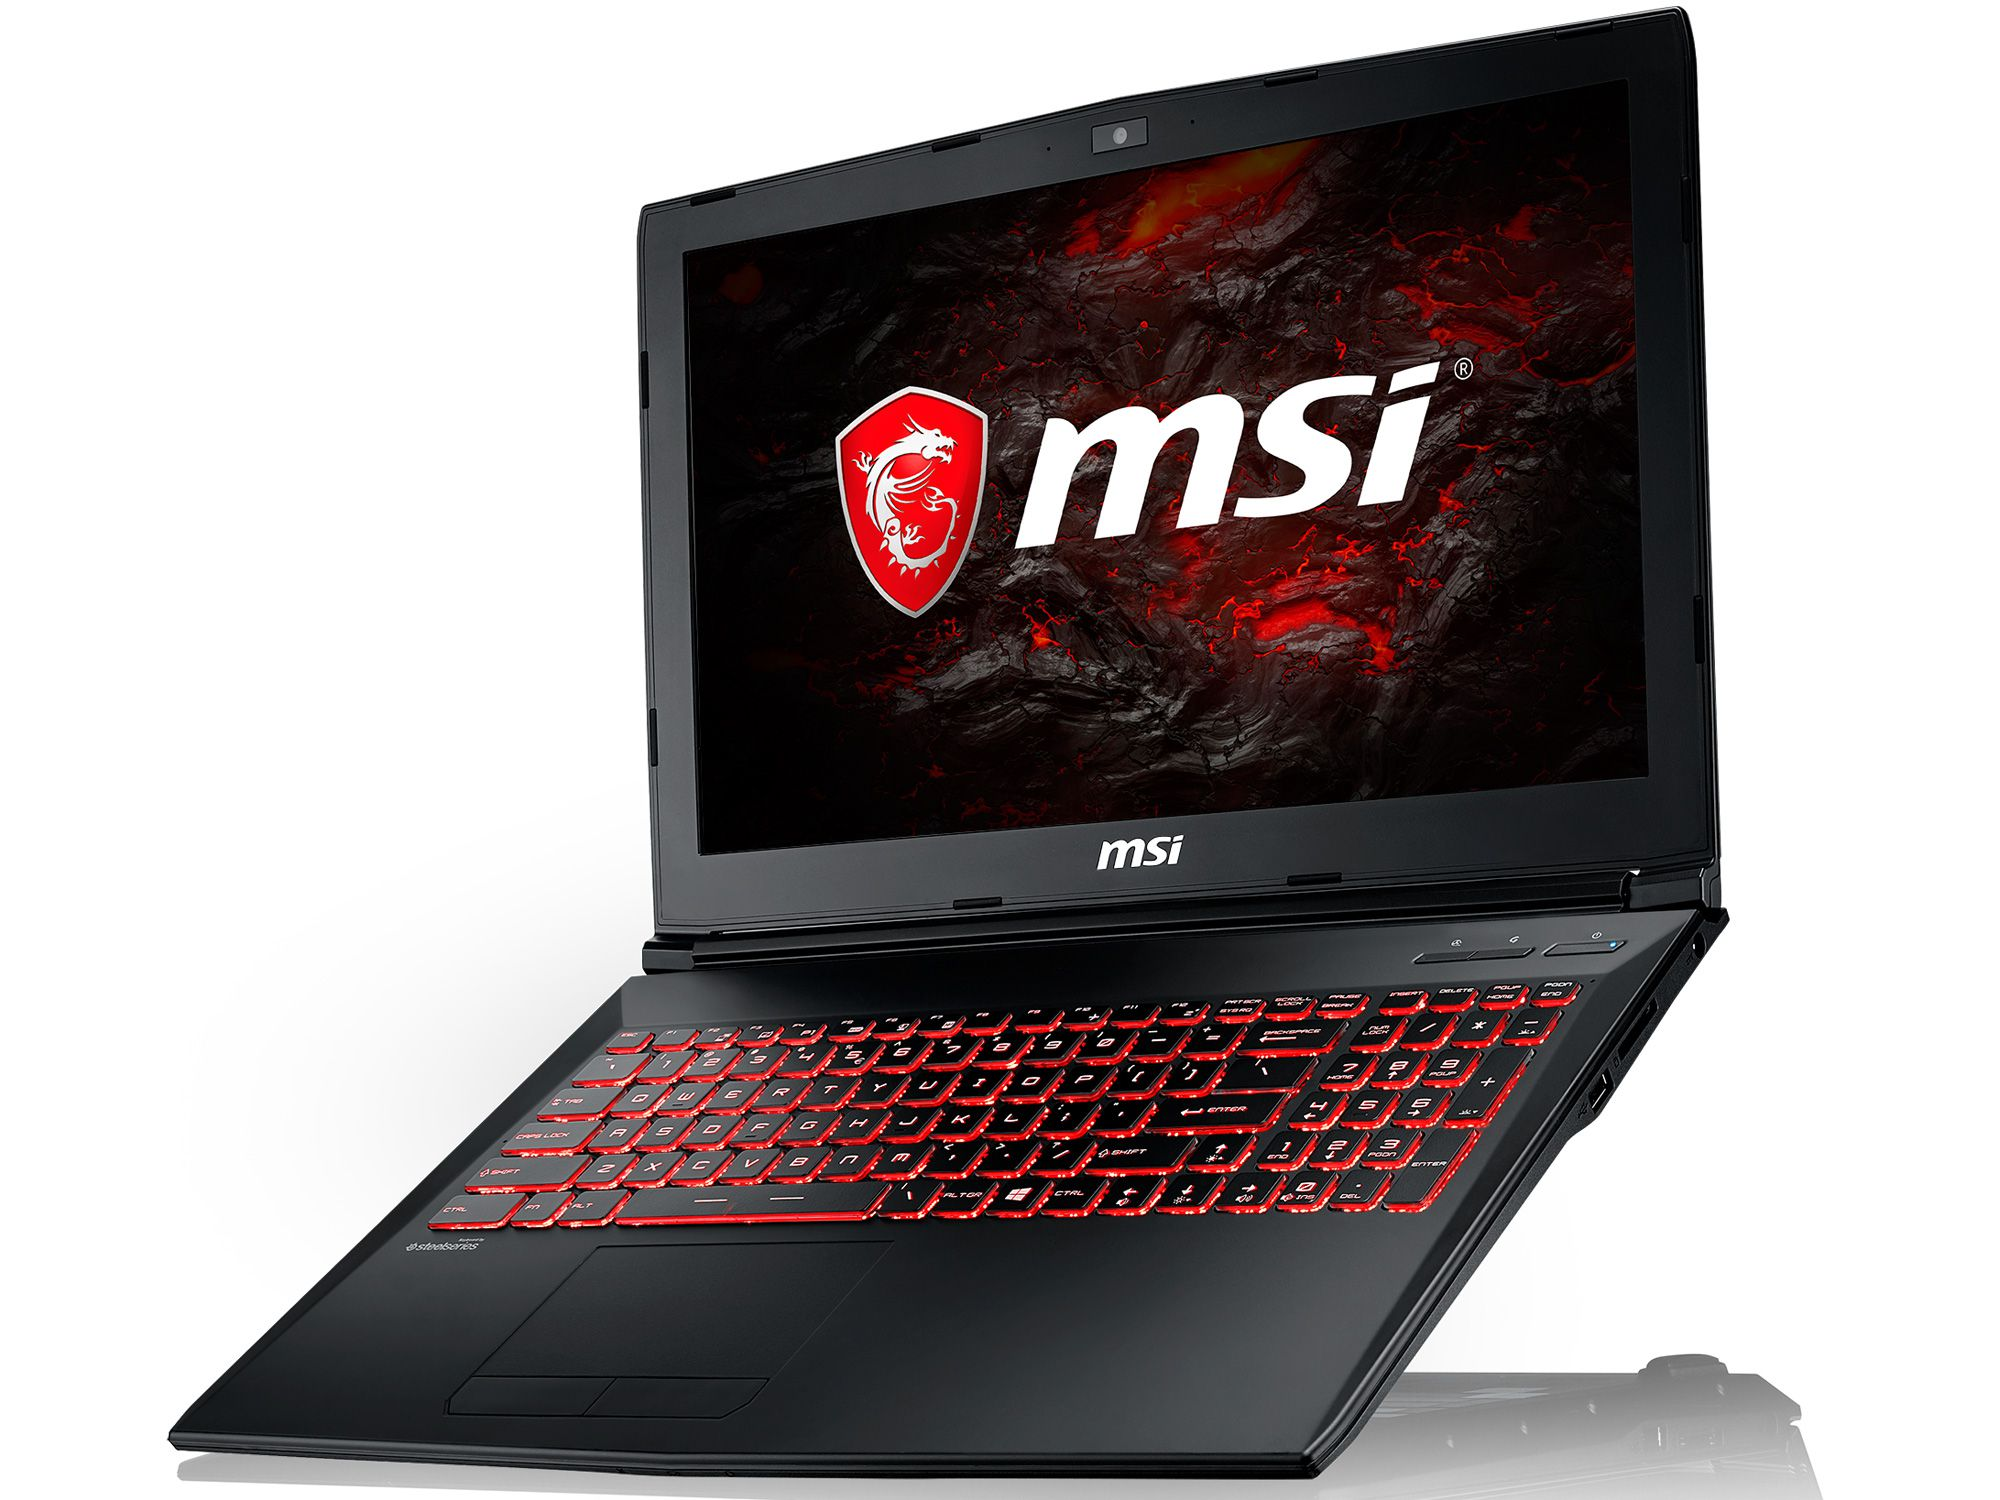 Laptop MSI GV72 7RE 1424XVN, Kabylake i7-7700HQ